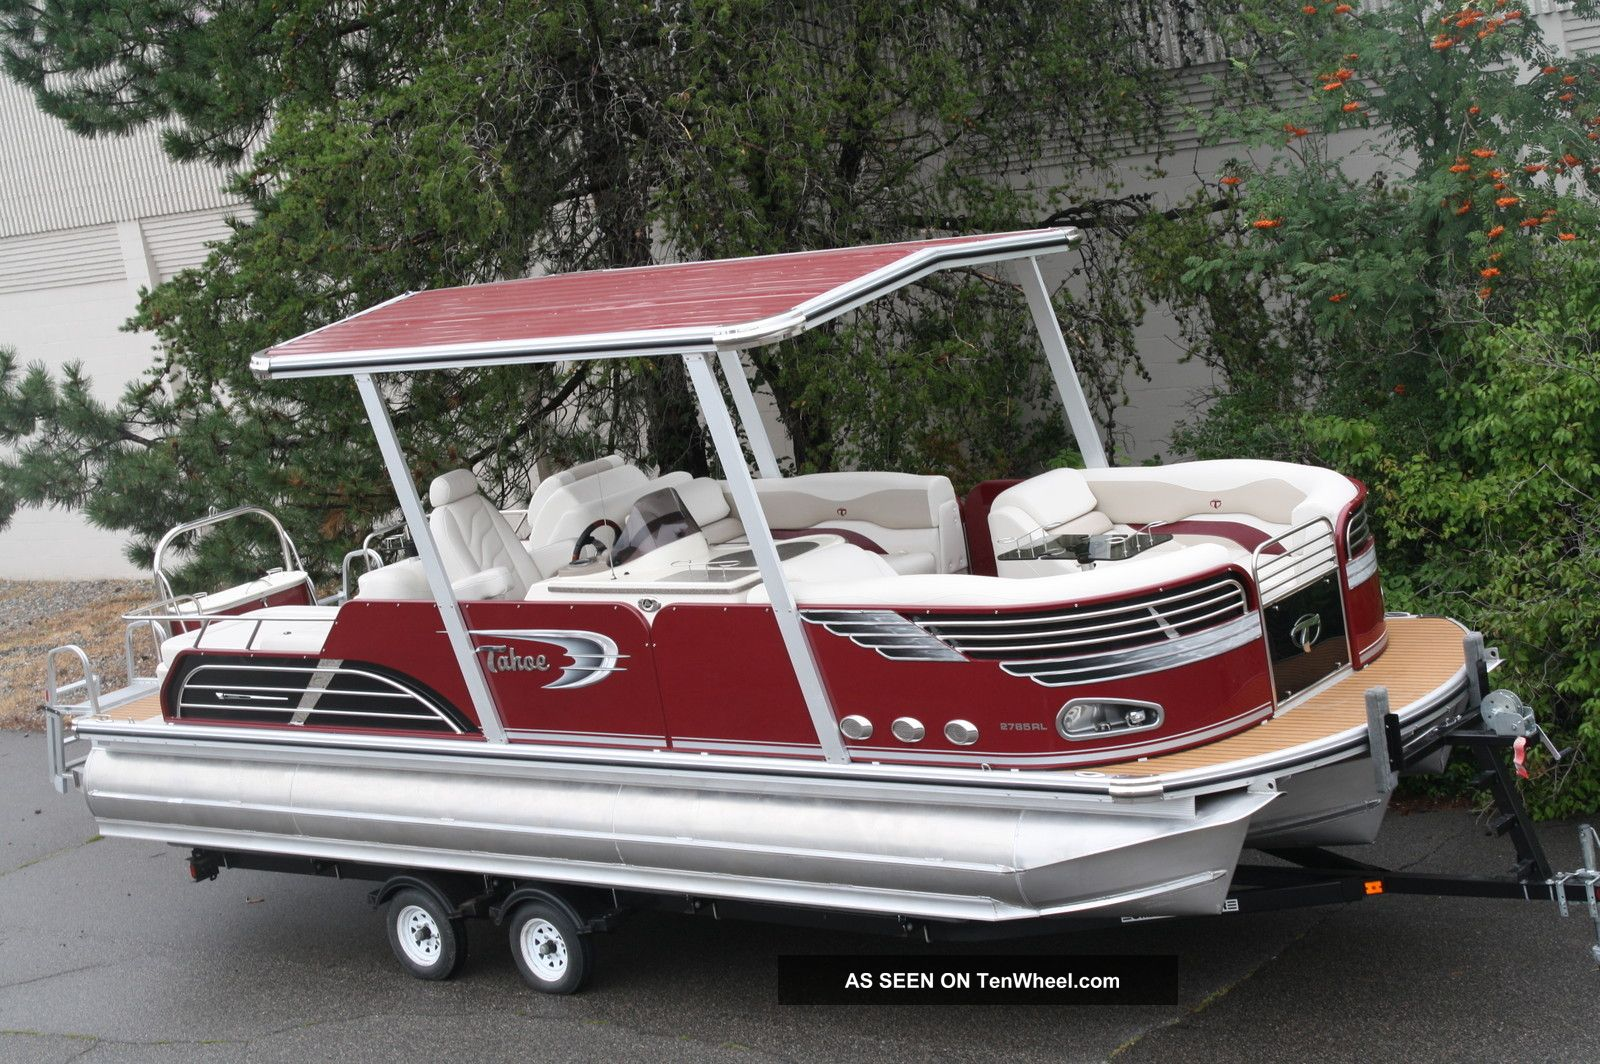 2011 Tahoe 27 Tahoe Vision Burg Pontoon / Deck Boats photo